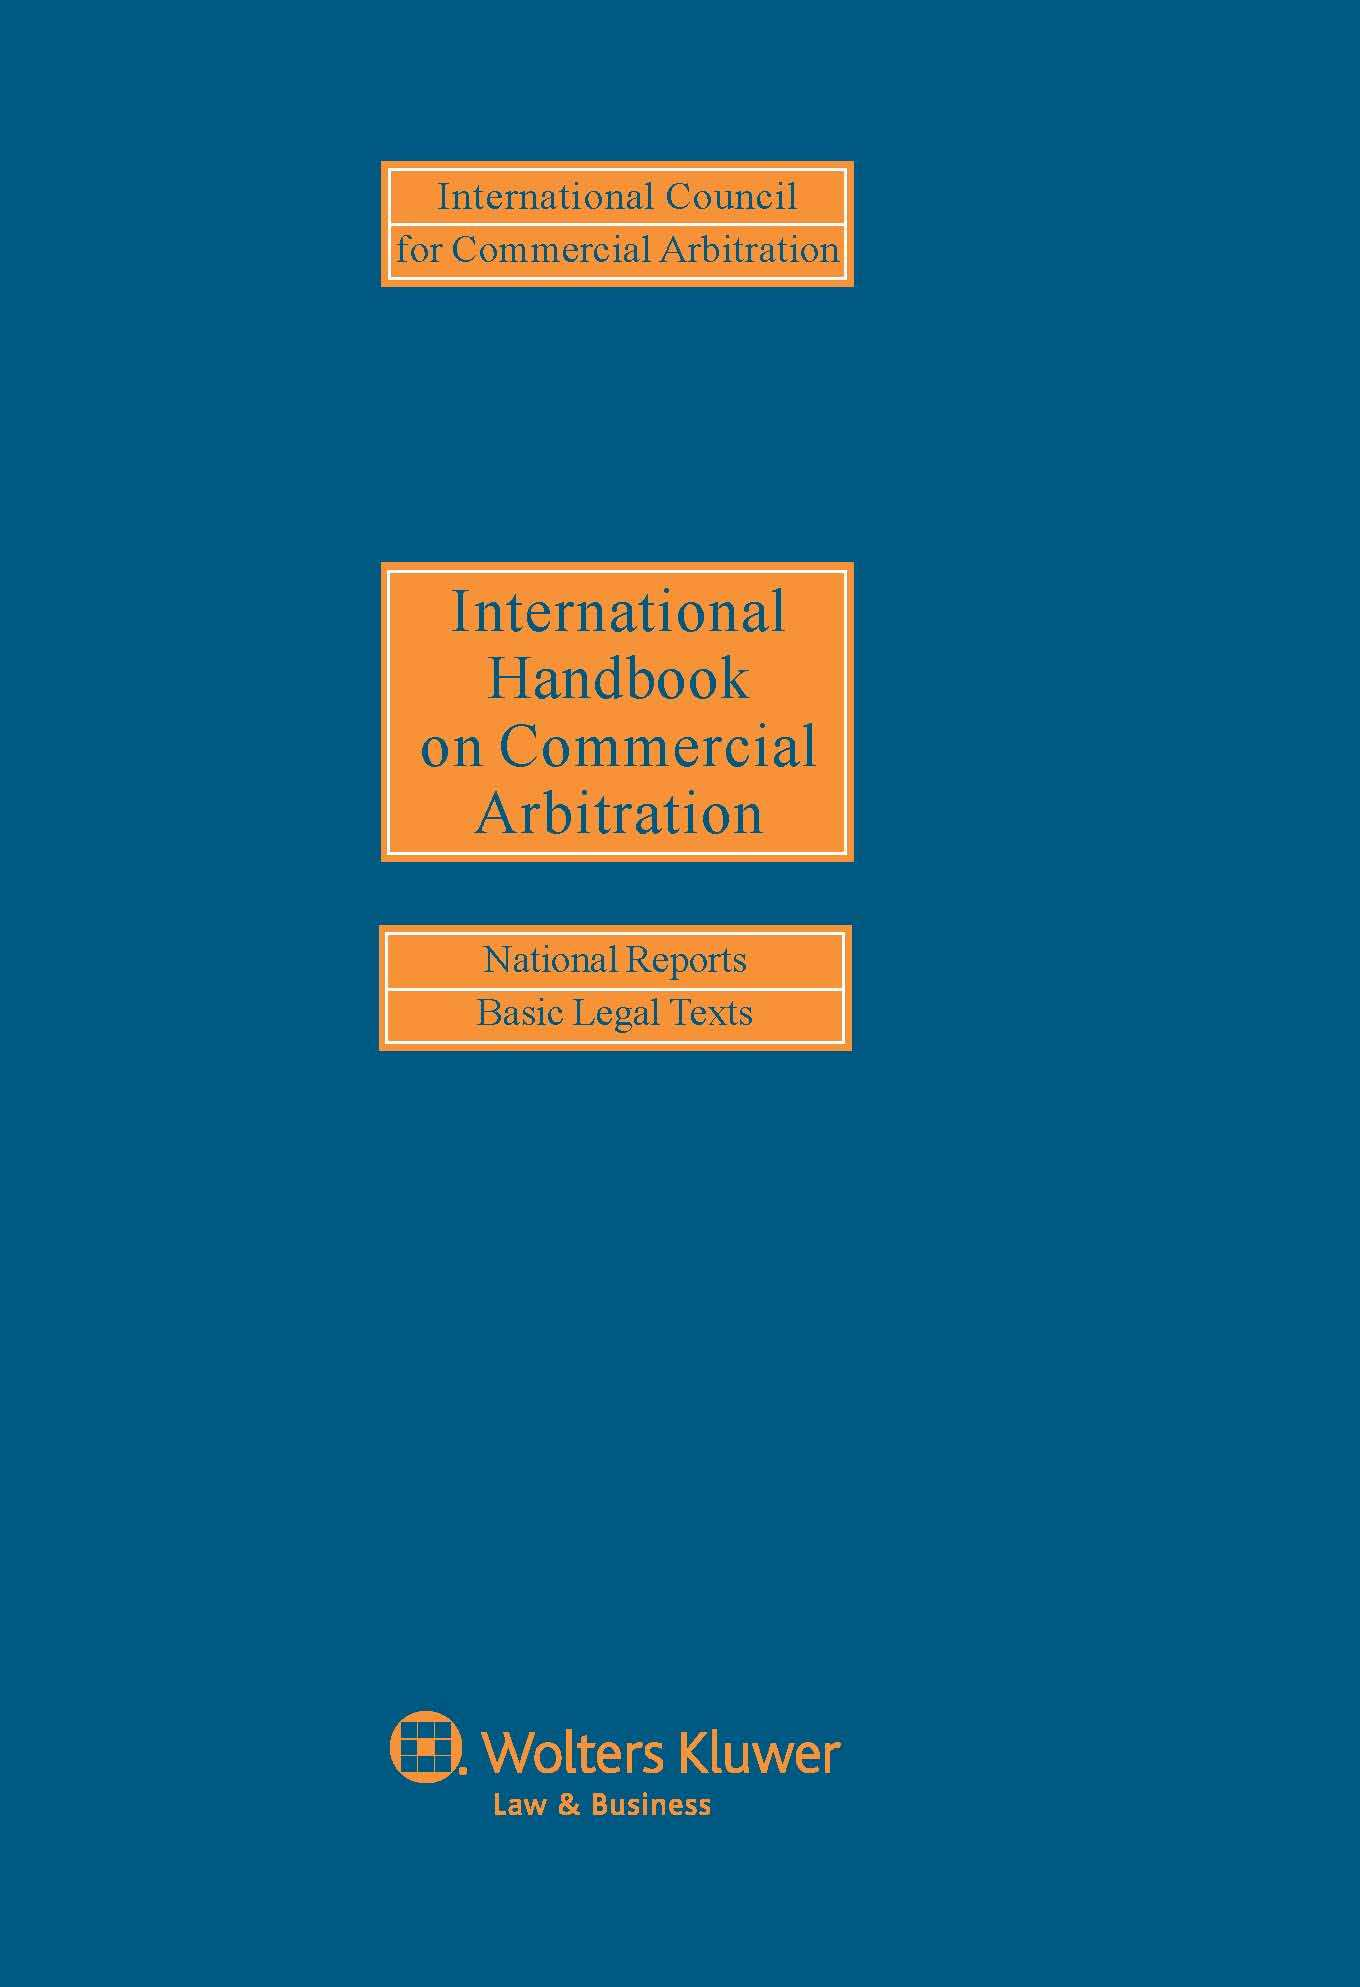 International Handbook on Commercial Arbitration: National Reports and Basic Legal Texts